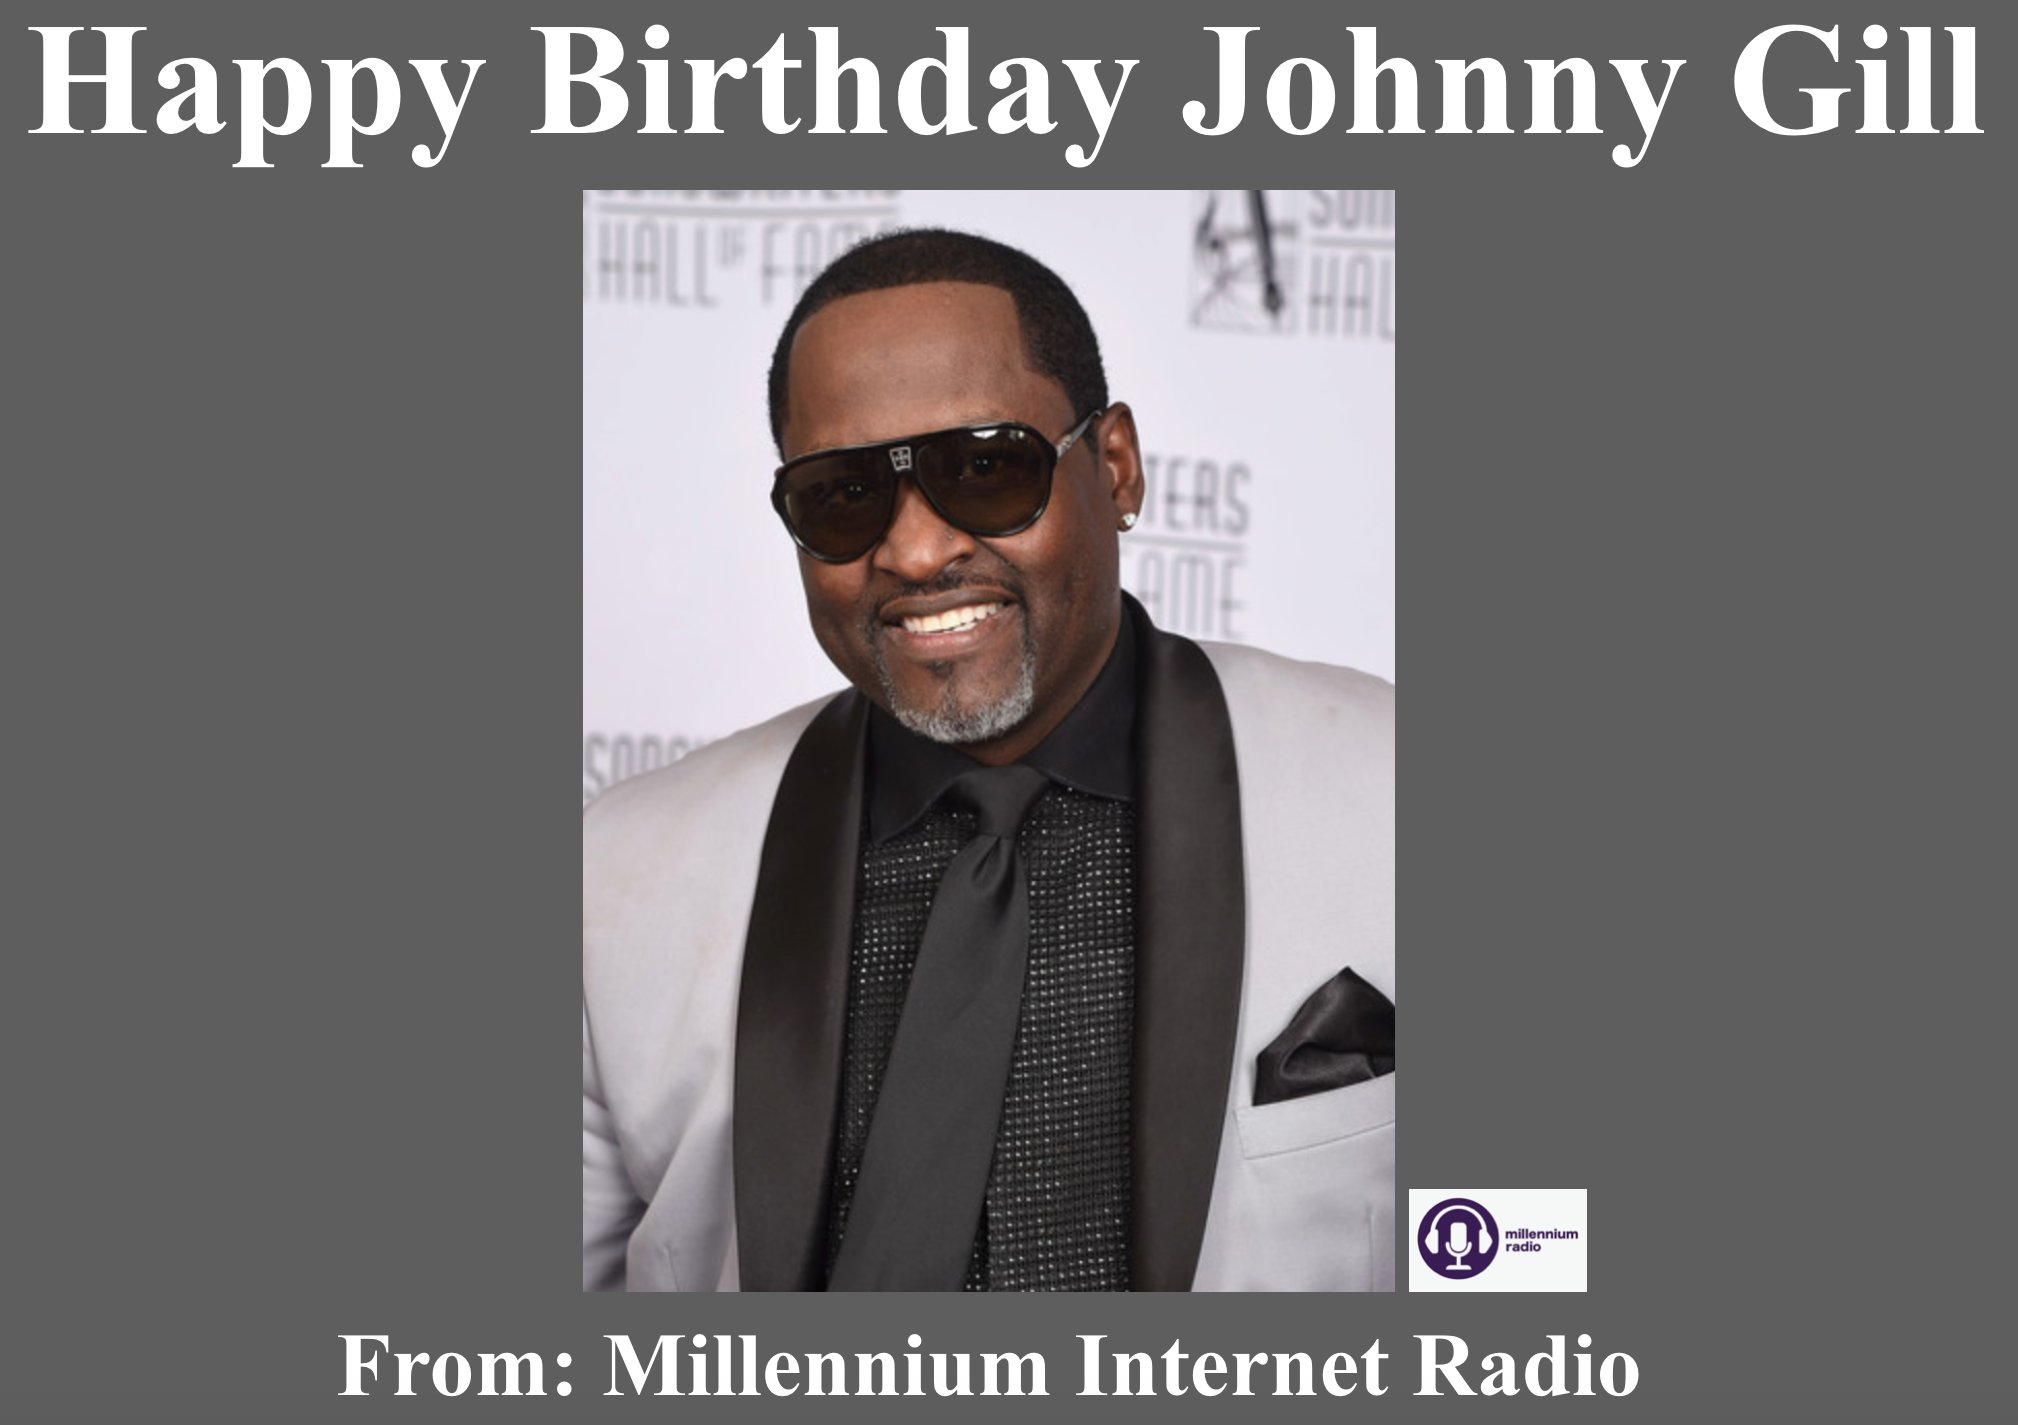 Happy Birthday to singer, songwriter, and actor Johnny Gill!!